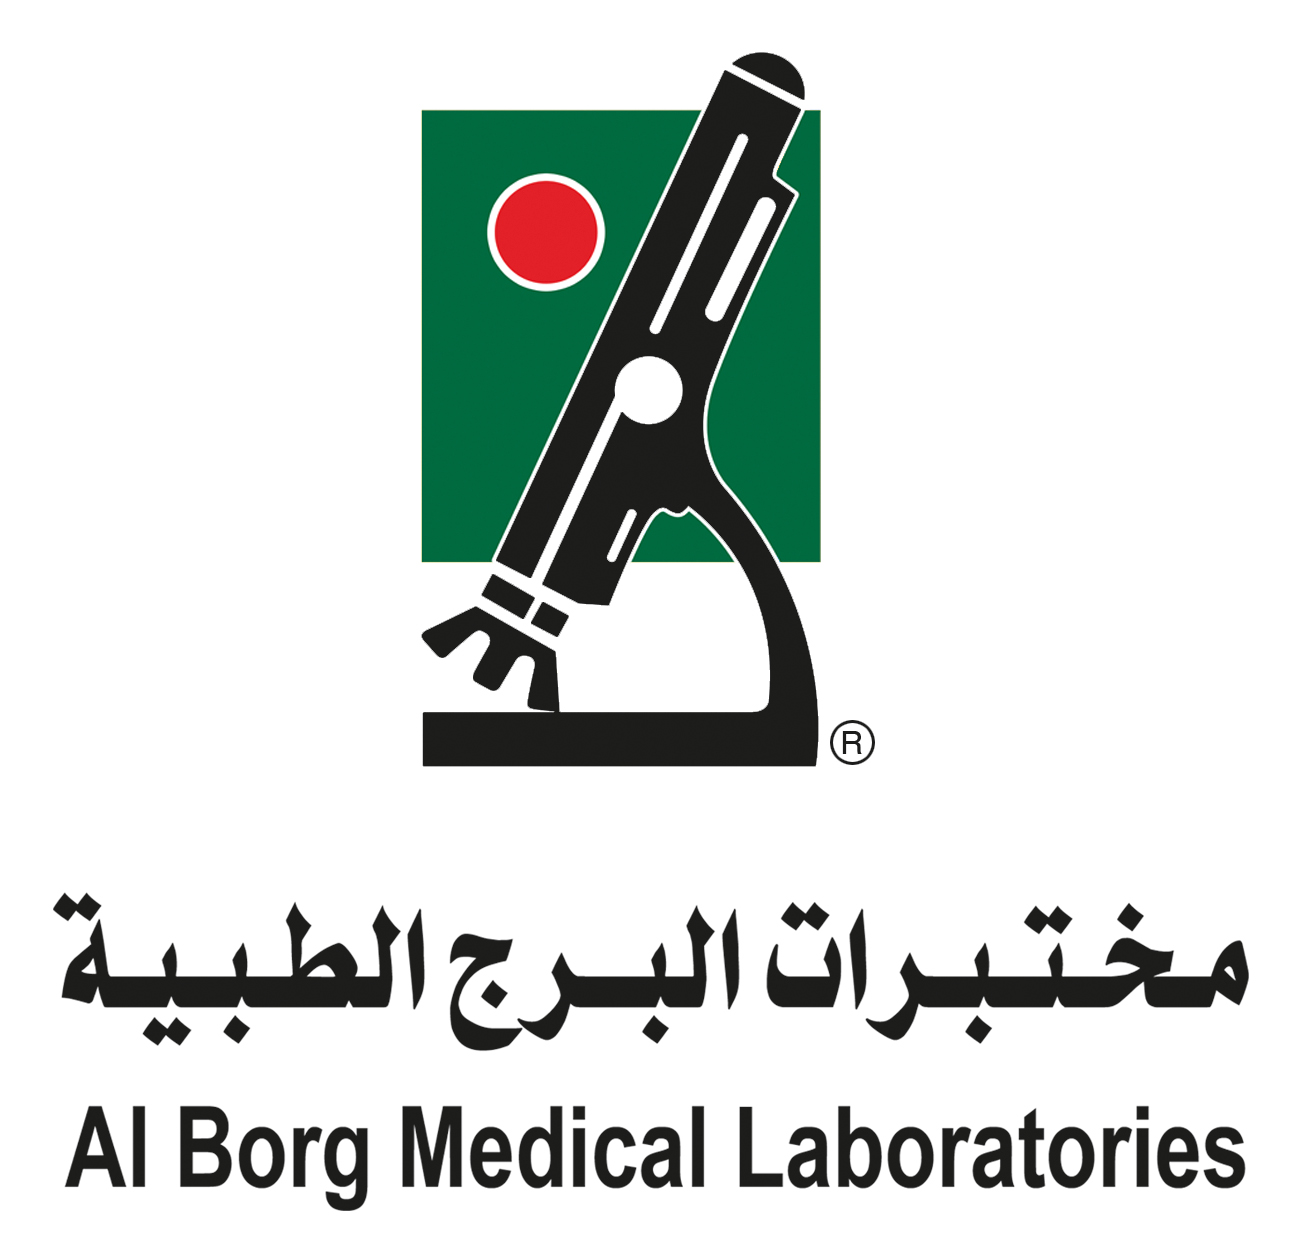 Al Borg Medical Laboratories - Madinat Khalifa, Qatar